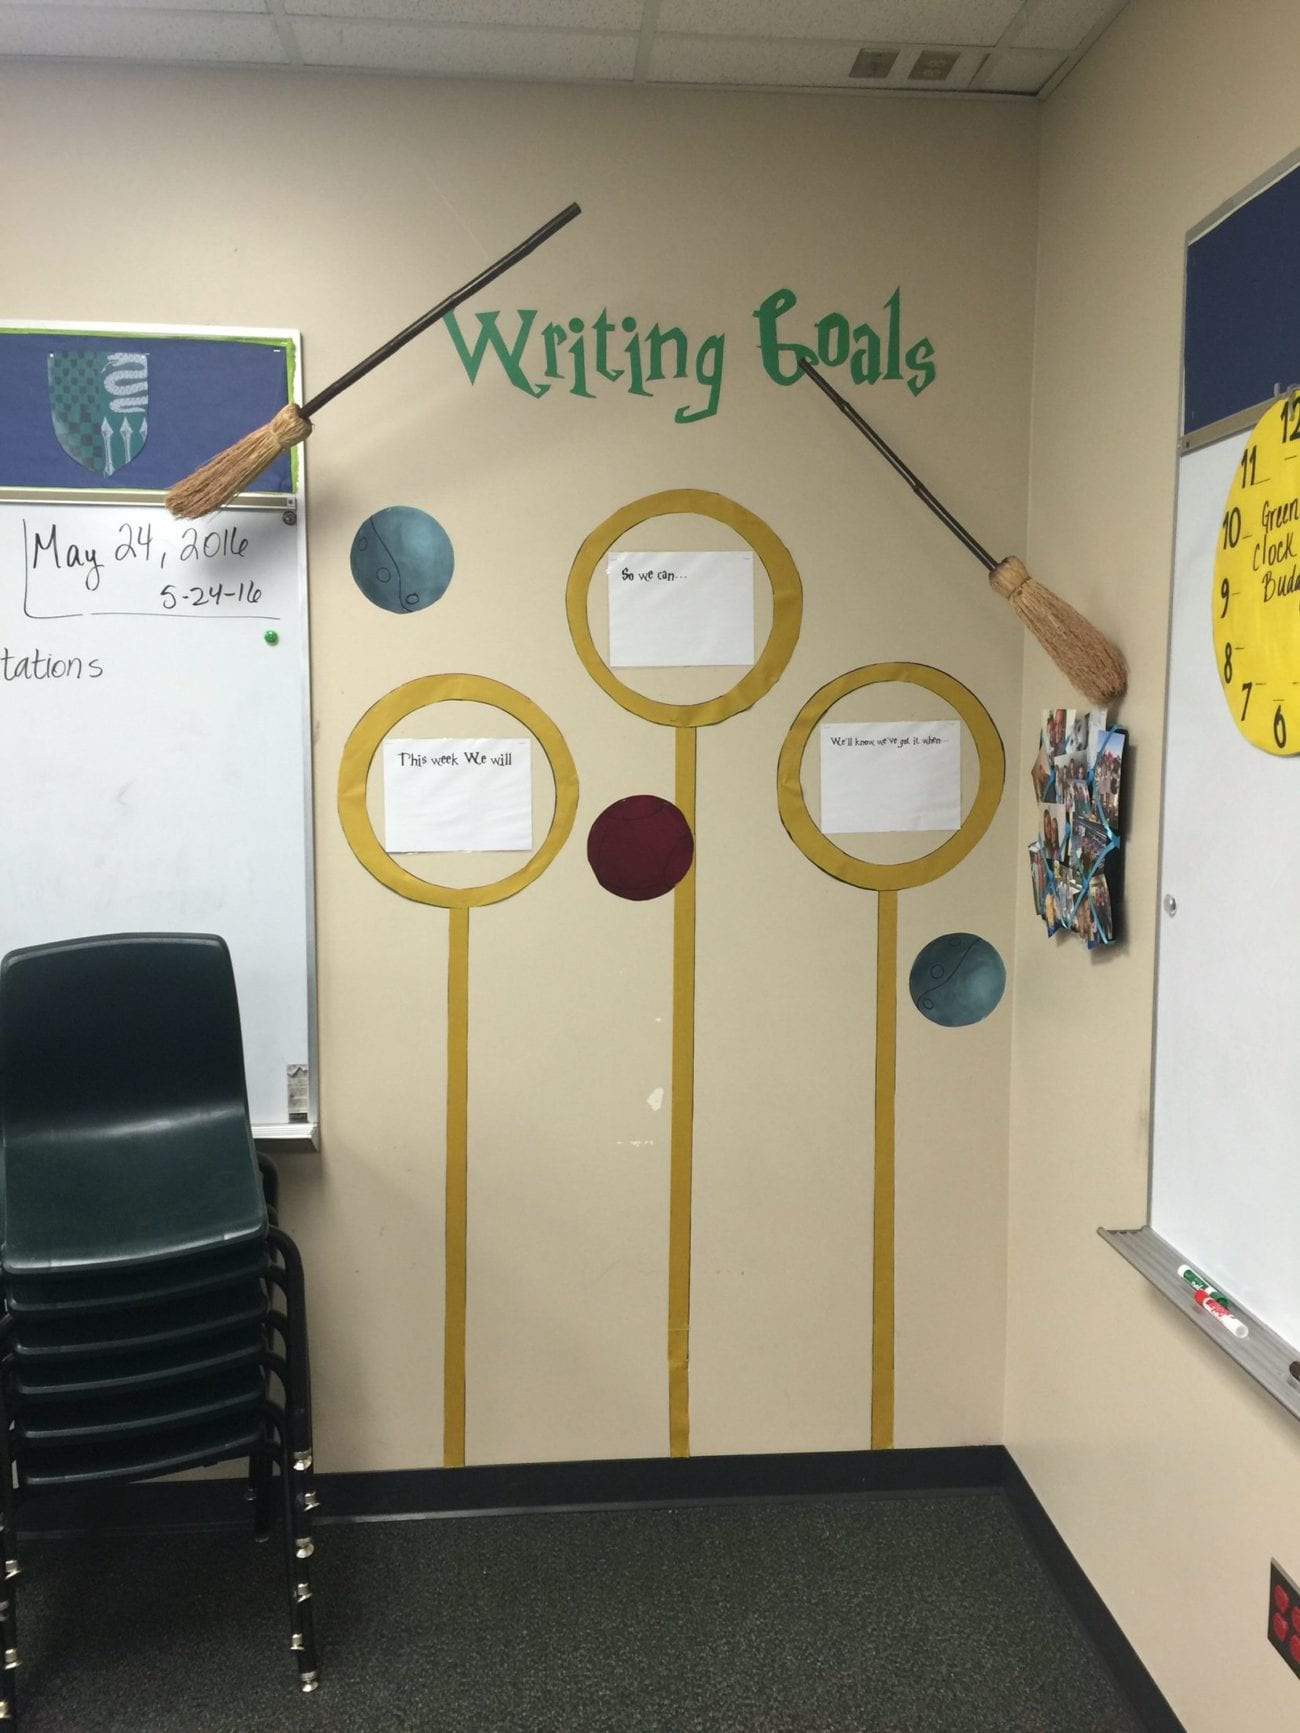 Harry Potter Bulletin Boards That Even Muggles Can Pull Off